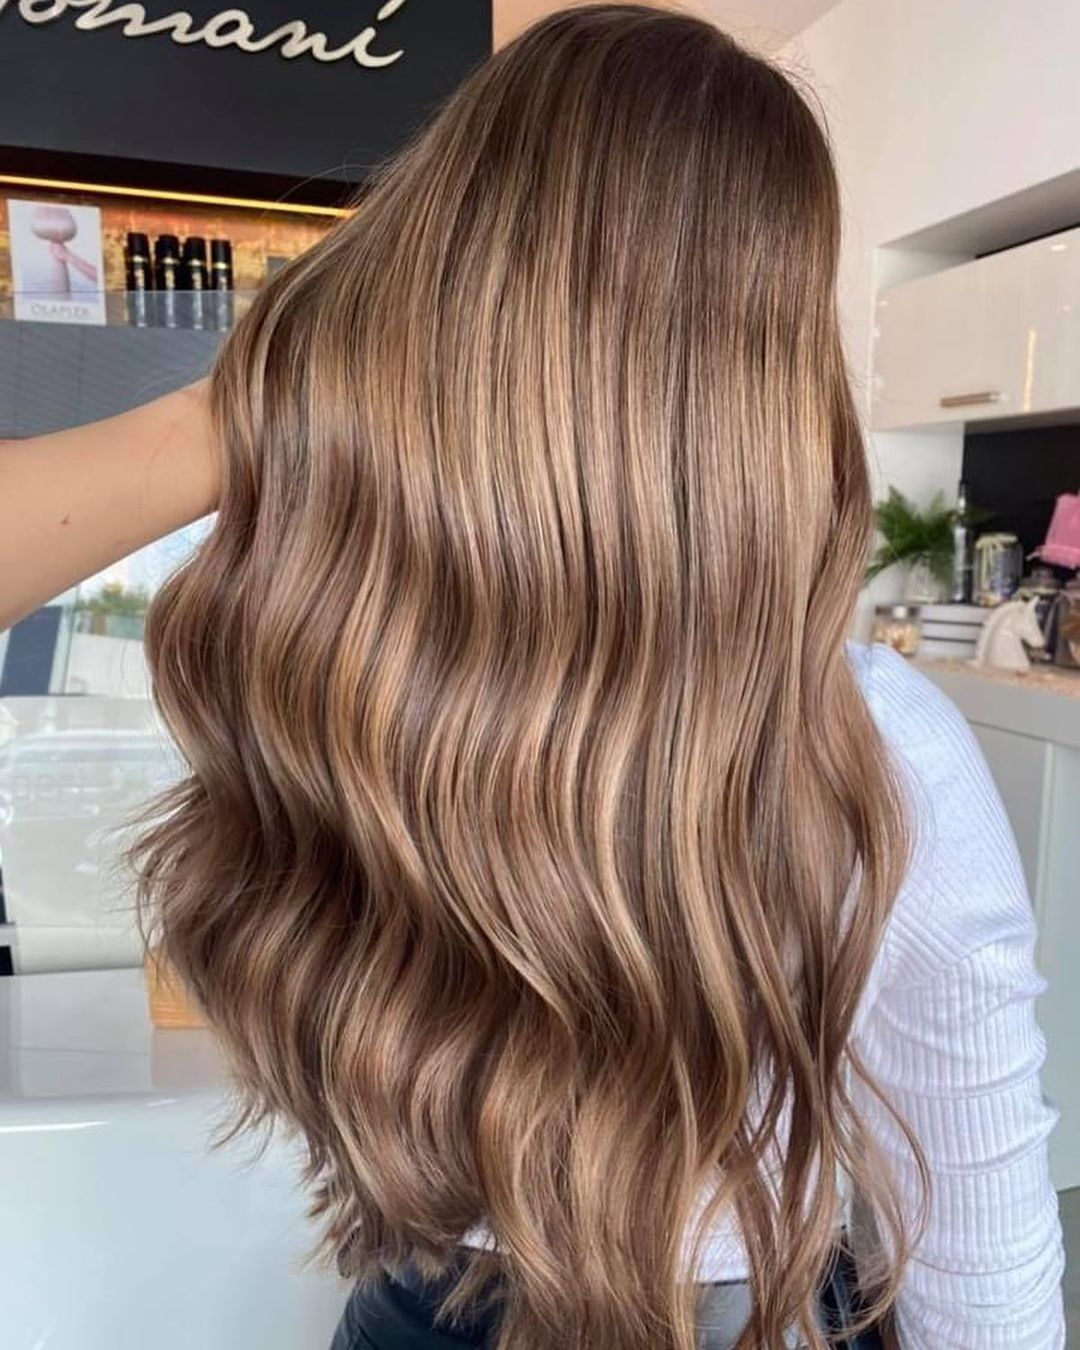 14 Light Brown Hair With Highlights Ideas Women Are Getting Blonde Brown Hair Color Light Hair Color Light Brunette Hair